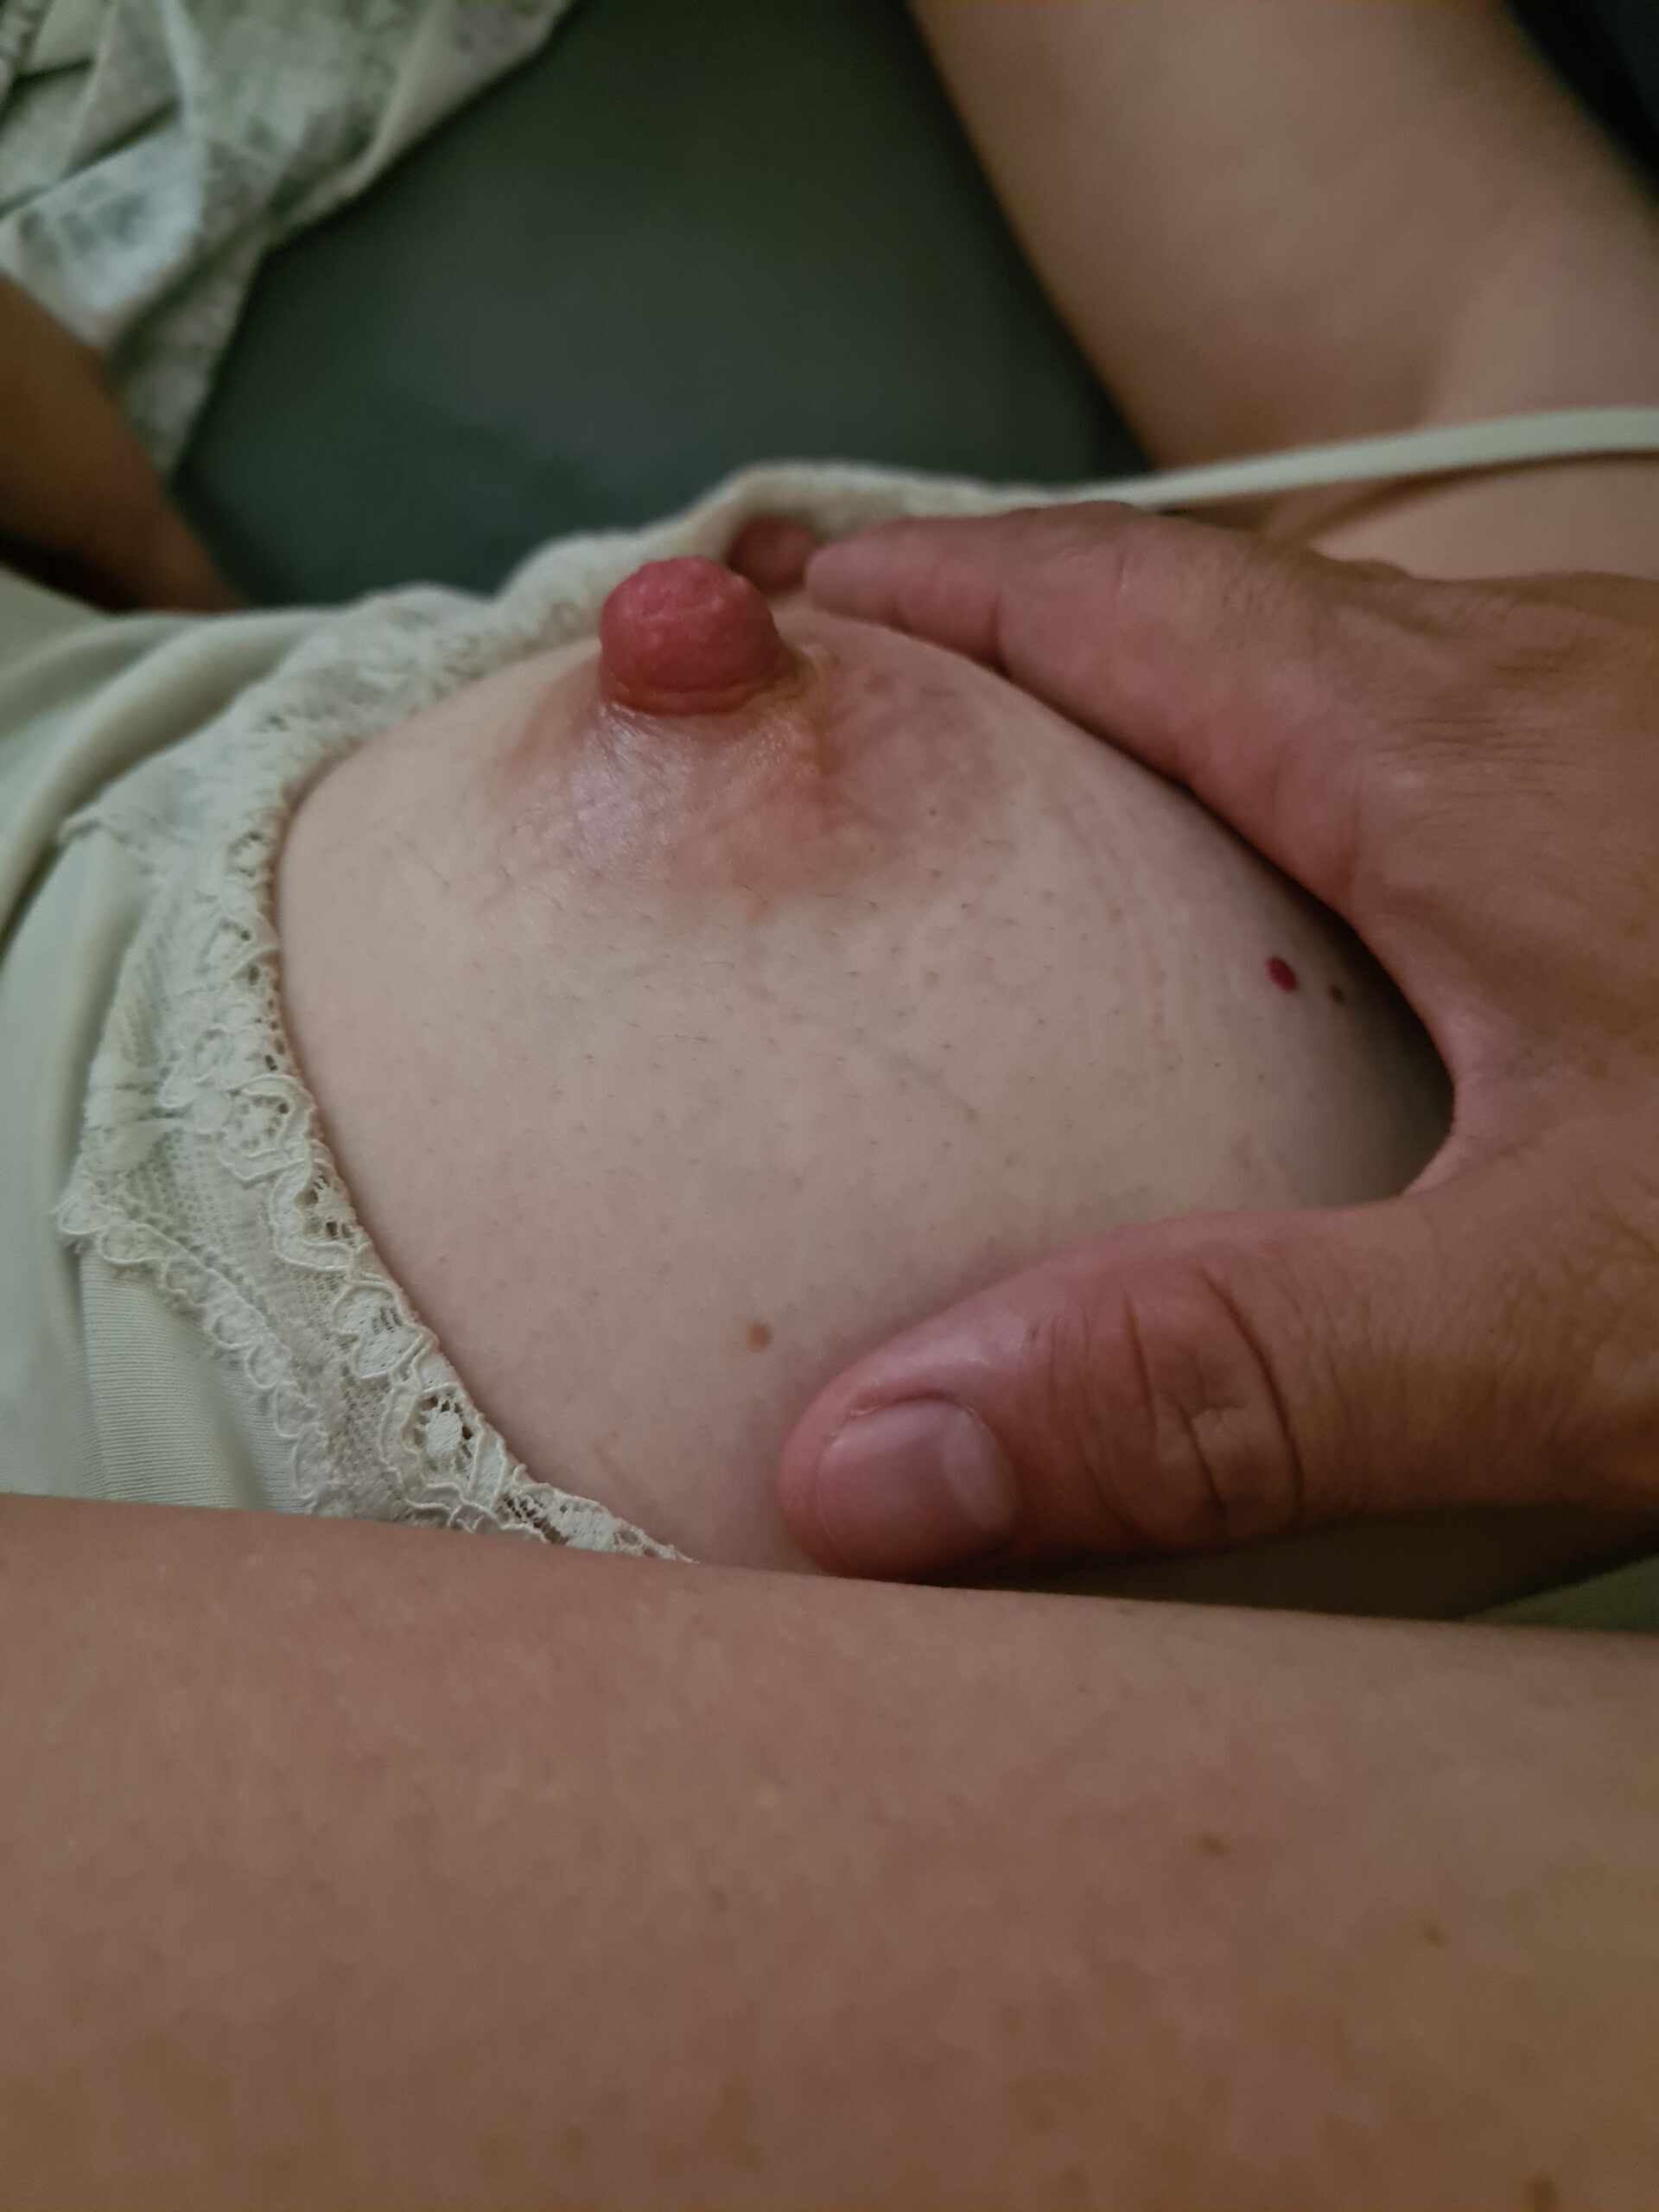 Wife nipple juicy close up real nudity howife boobs flash